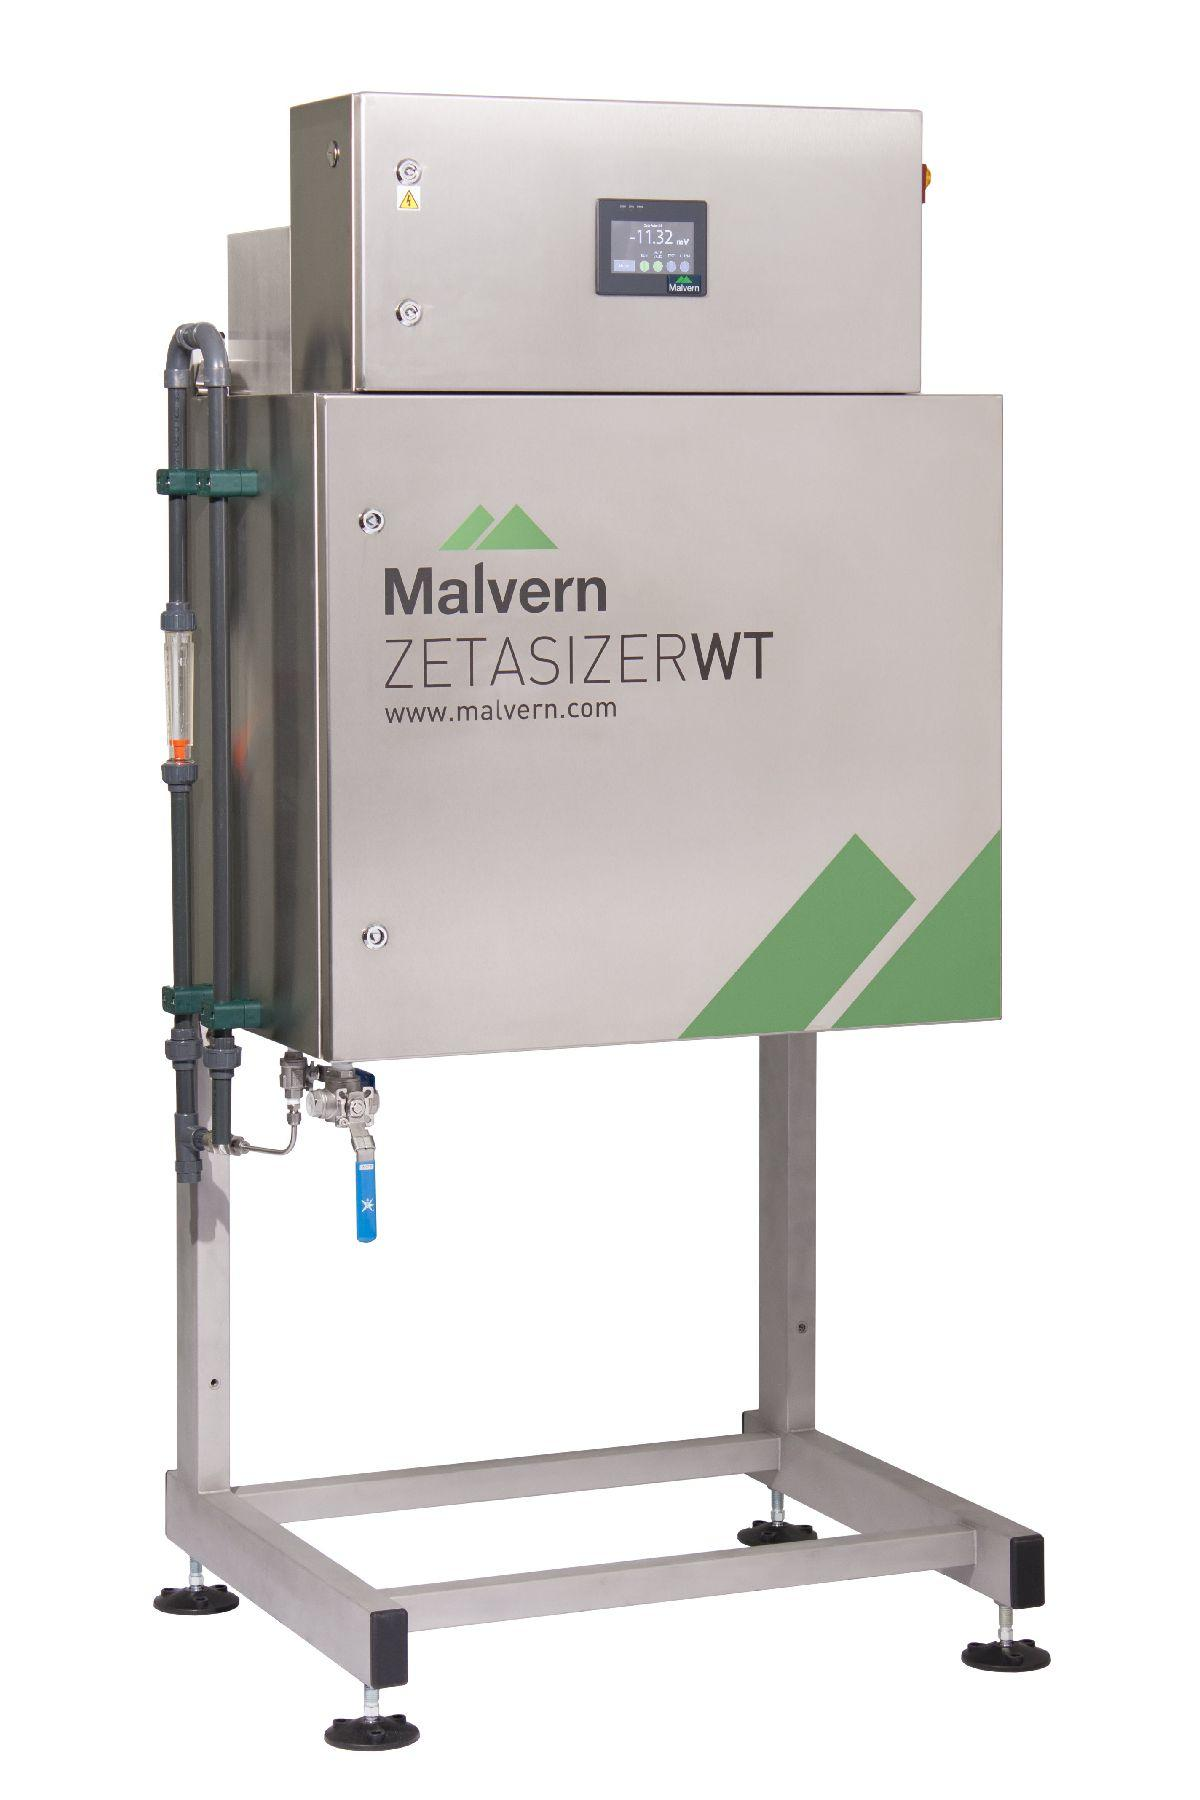 The new Zetasizer WT, an automated continuous monitoring solution for water purification